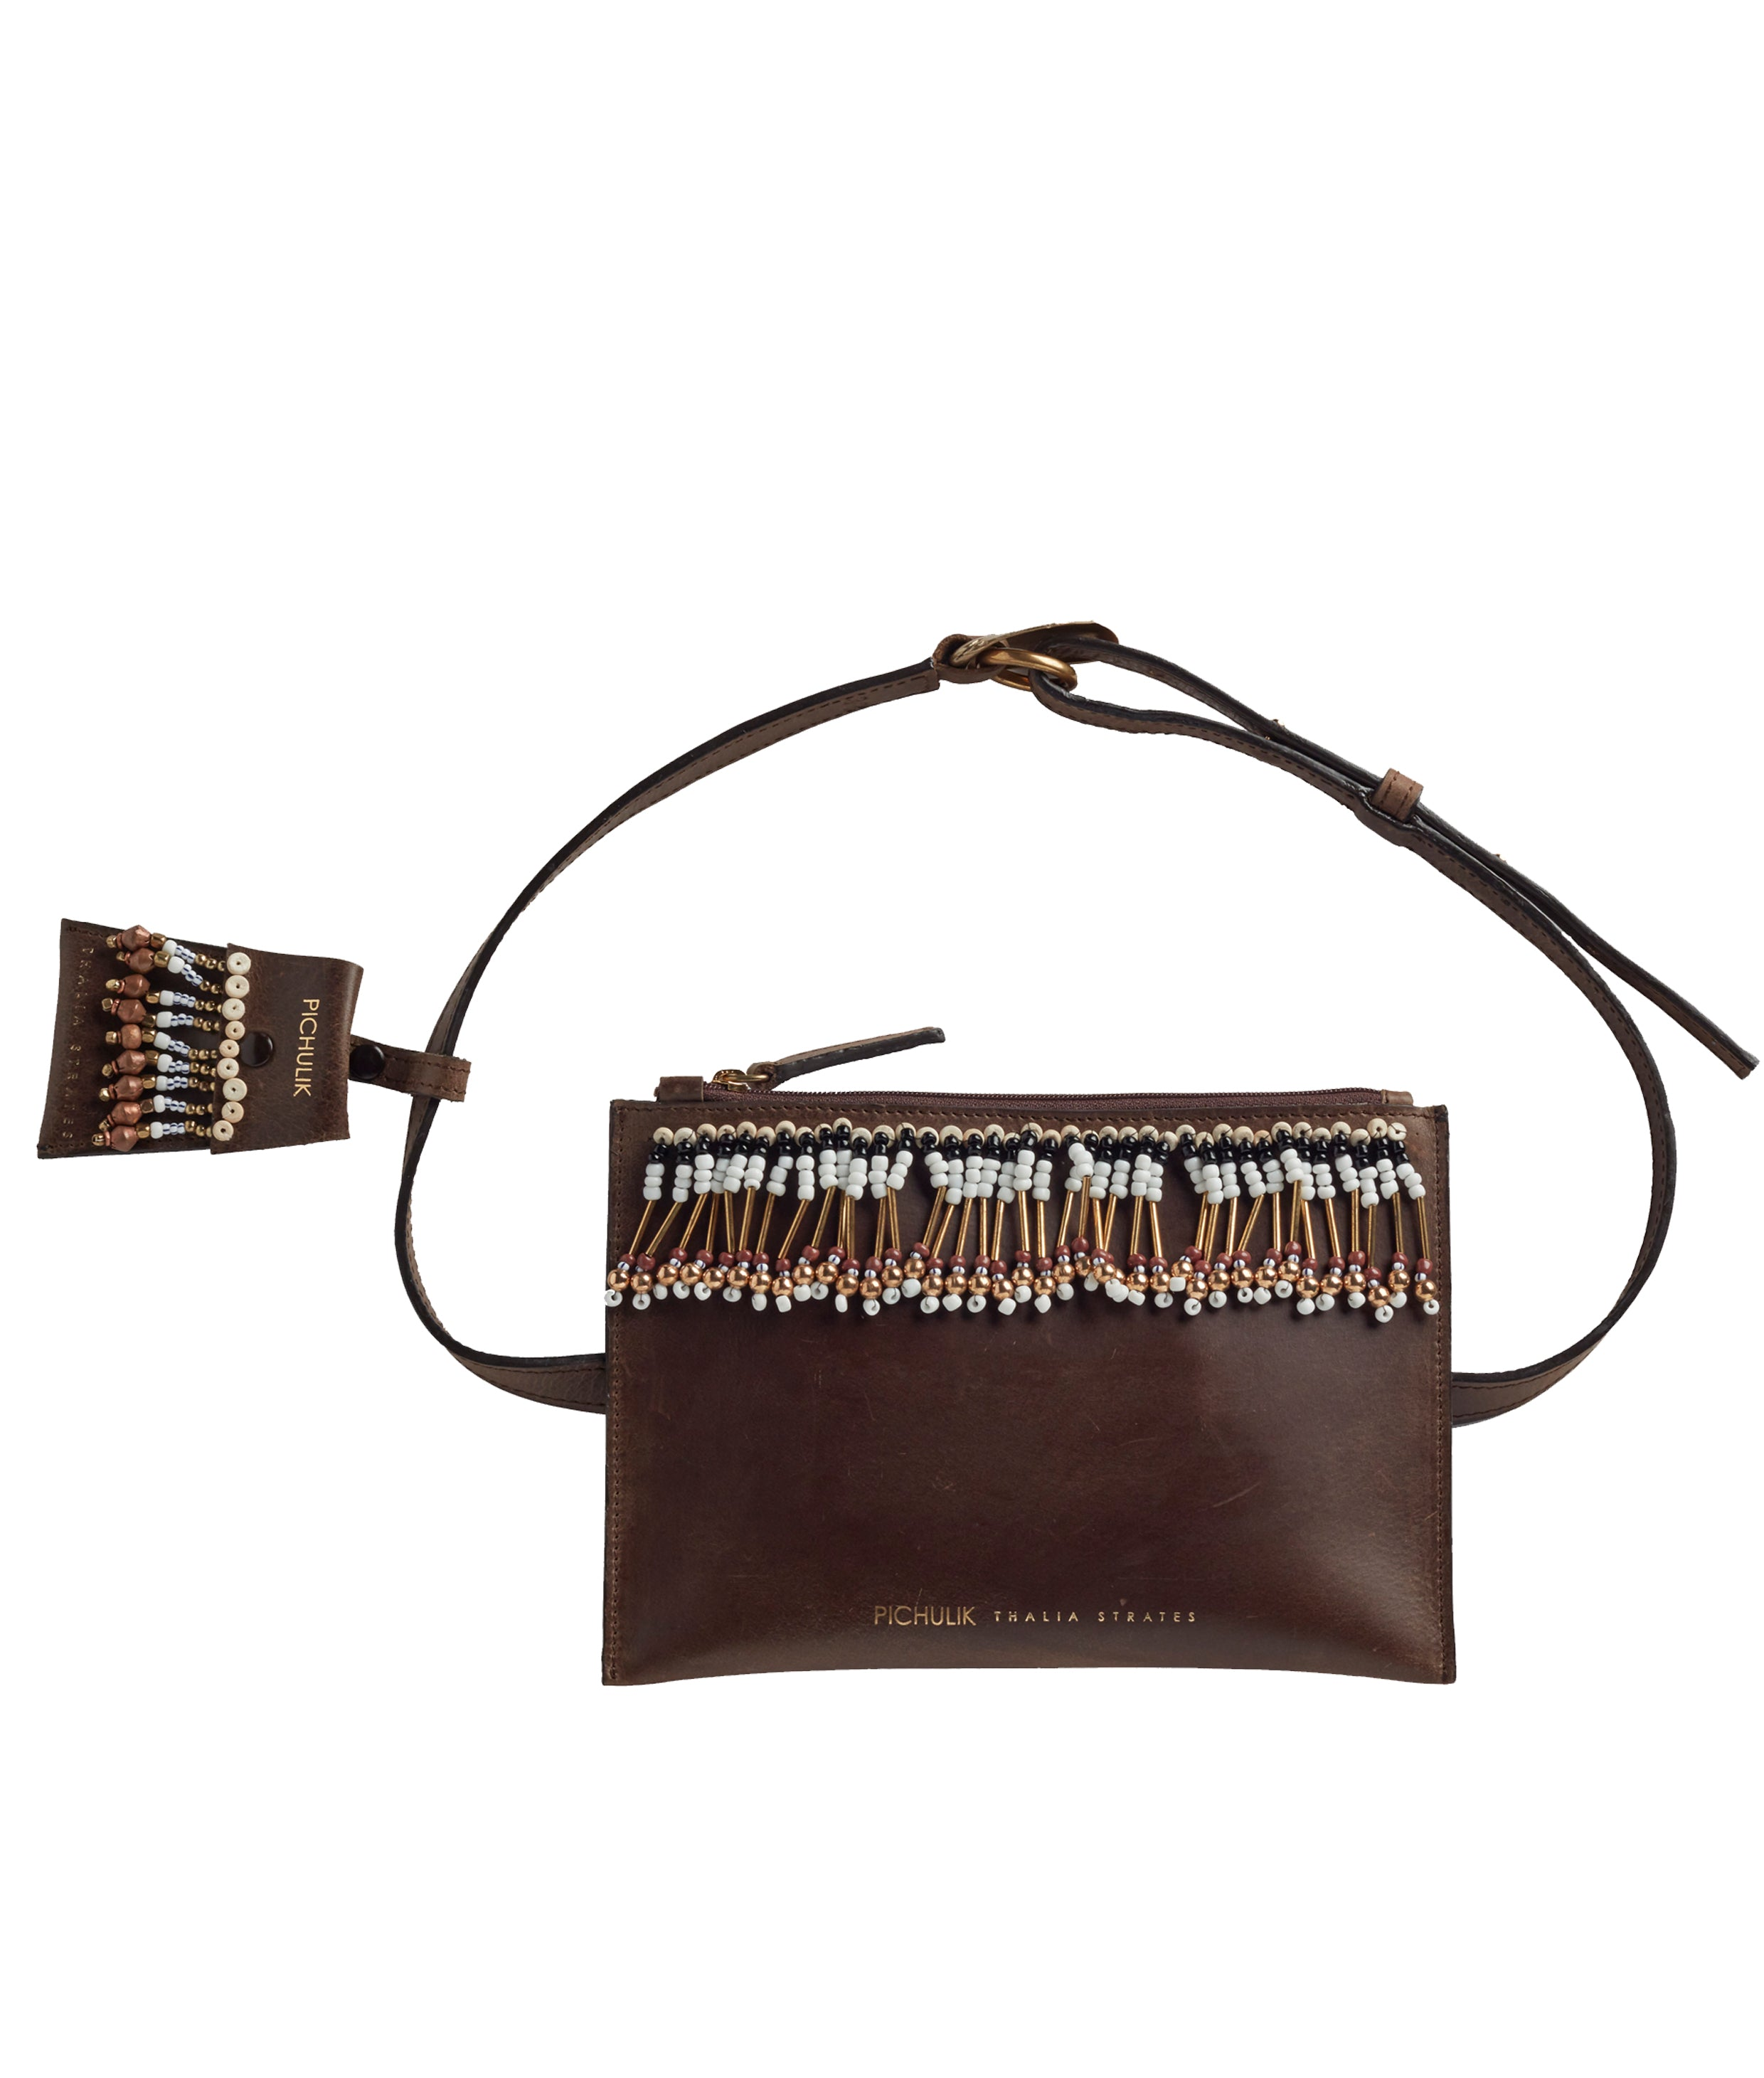 Thalia Strates x Pichulik Beltbag - Coffee